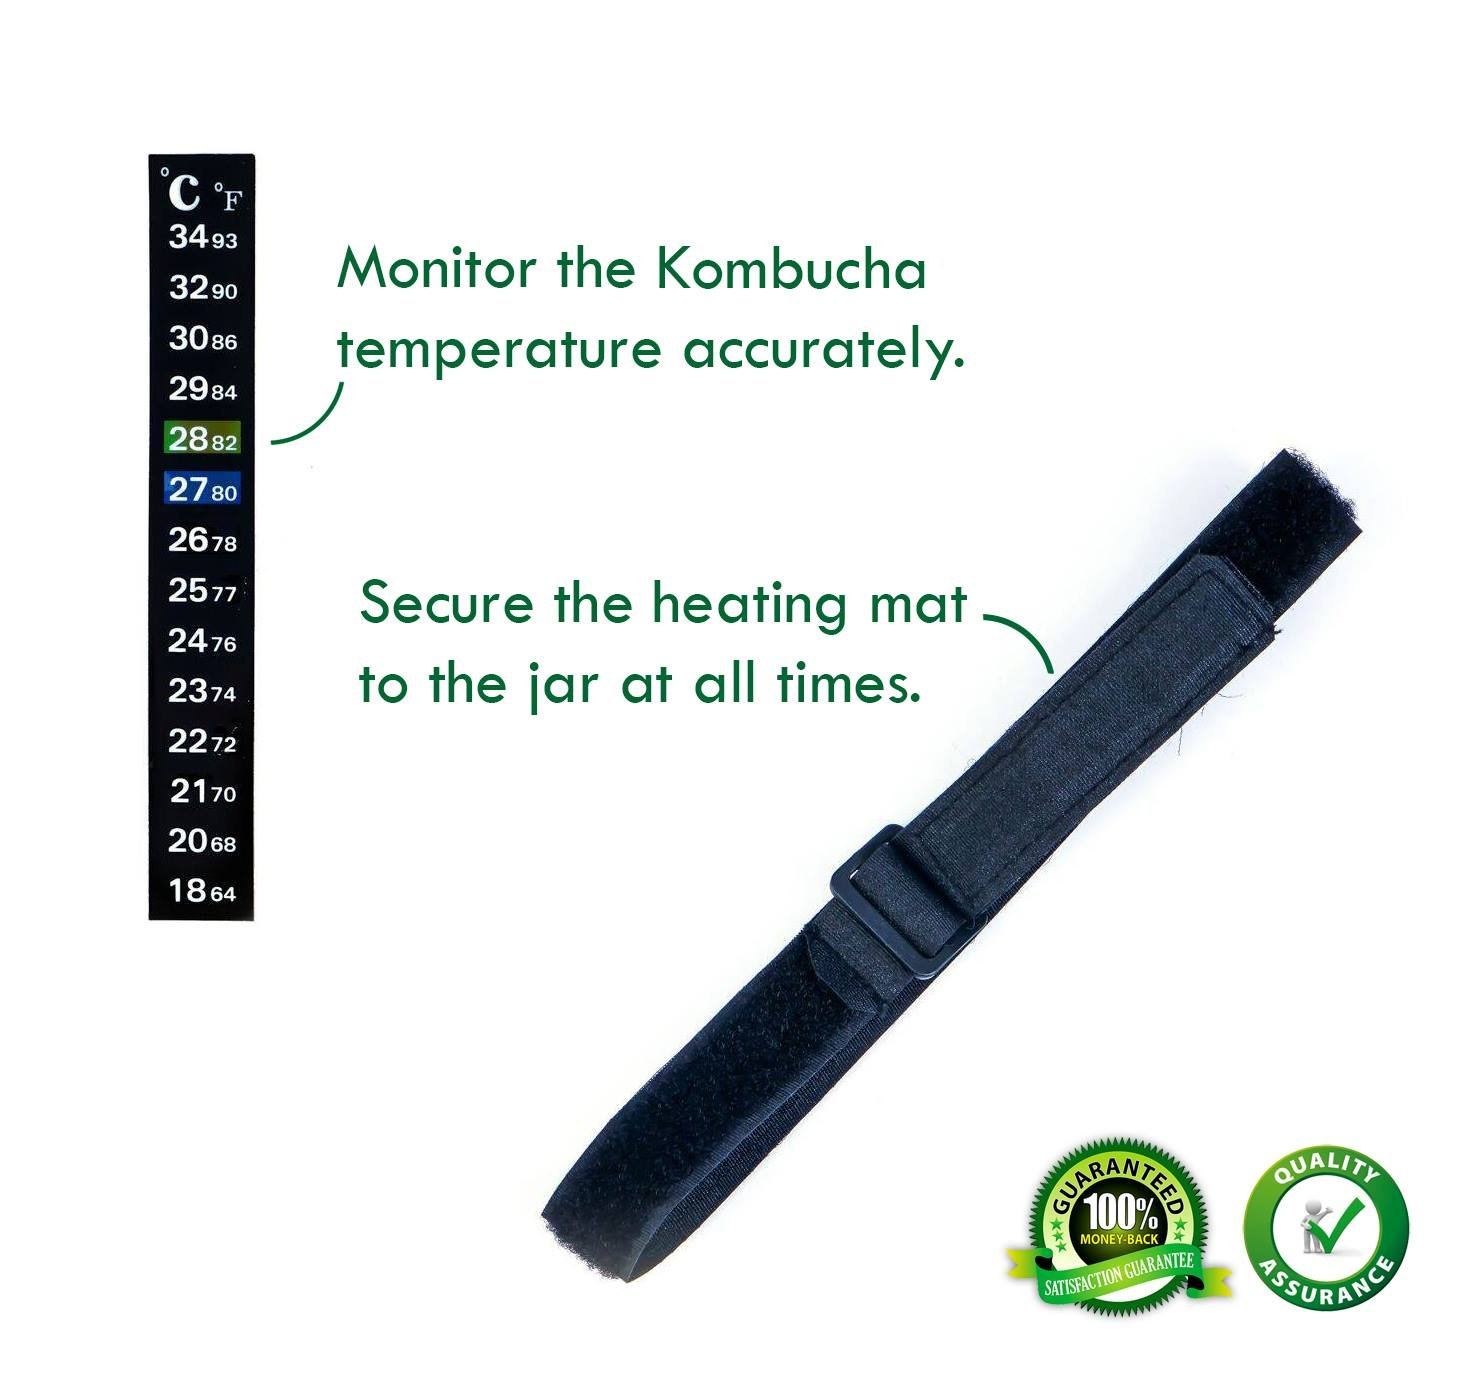 Perfect Kombucha Fermentation Heater Wrap Around Brew Belt with Temperature Control and Thermometer 3x20 Kombucha Heater with Strap Set of 02 Units